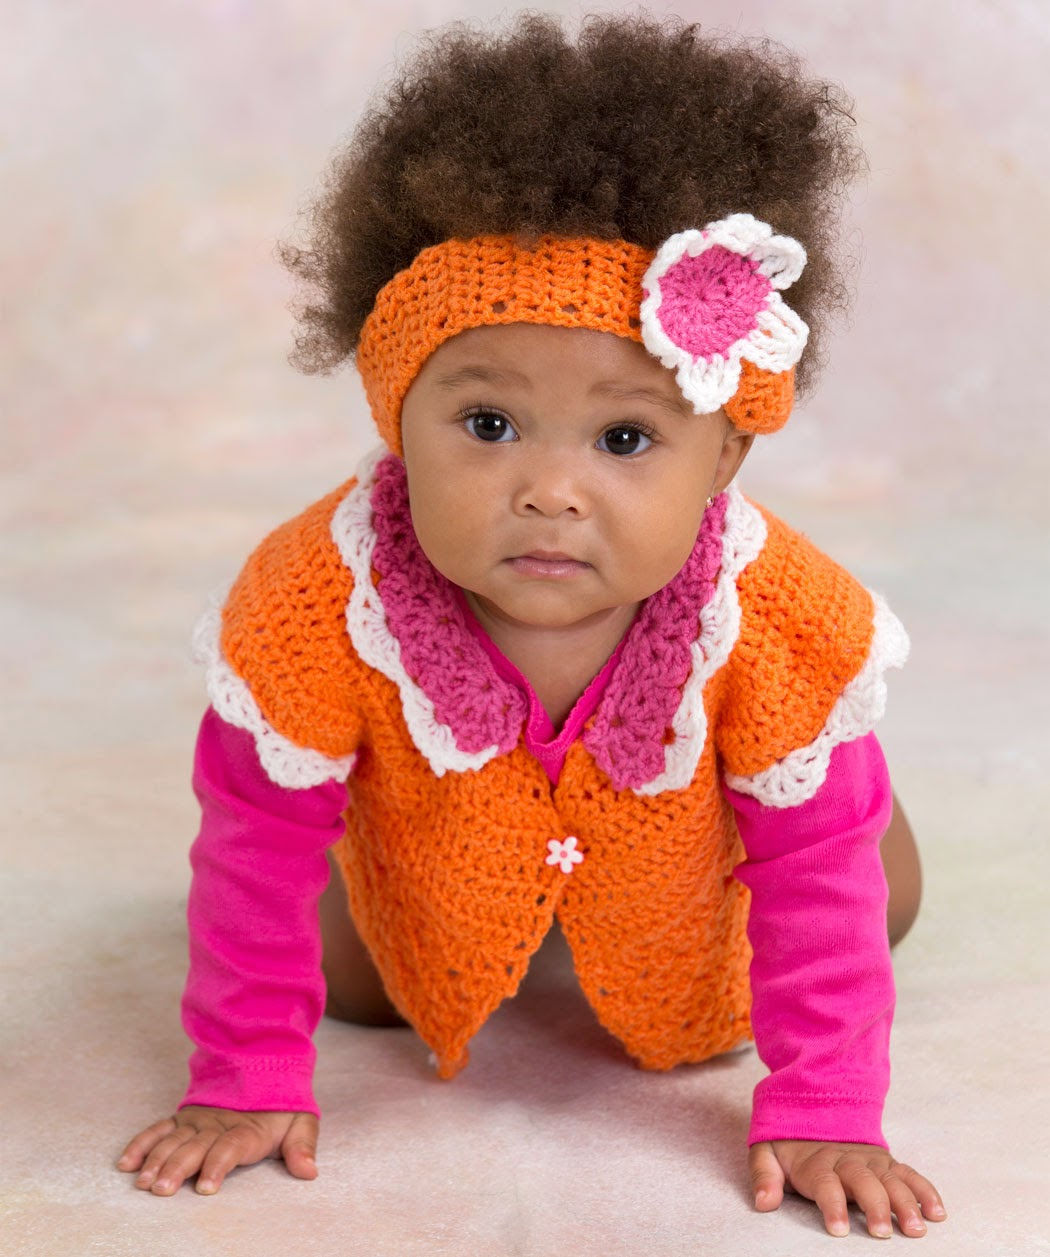 Free crochet patterns and designs by lisaauch free crochet free baby cardigan crochet patterns free crochet patterns for baby bankloansurffo Image collections